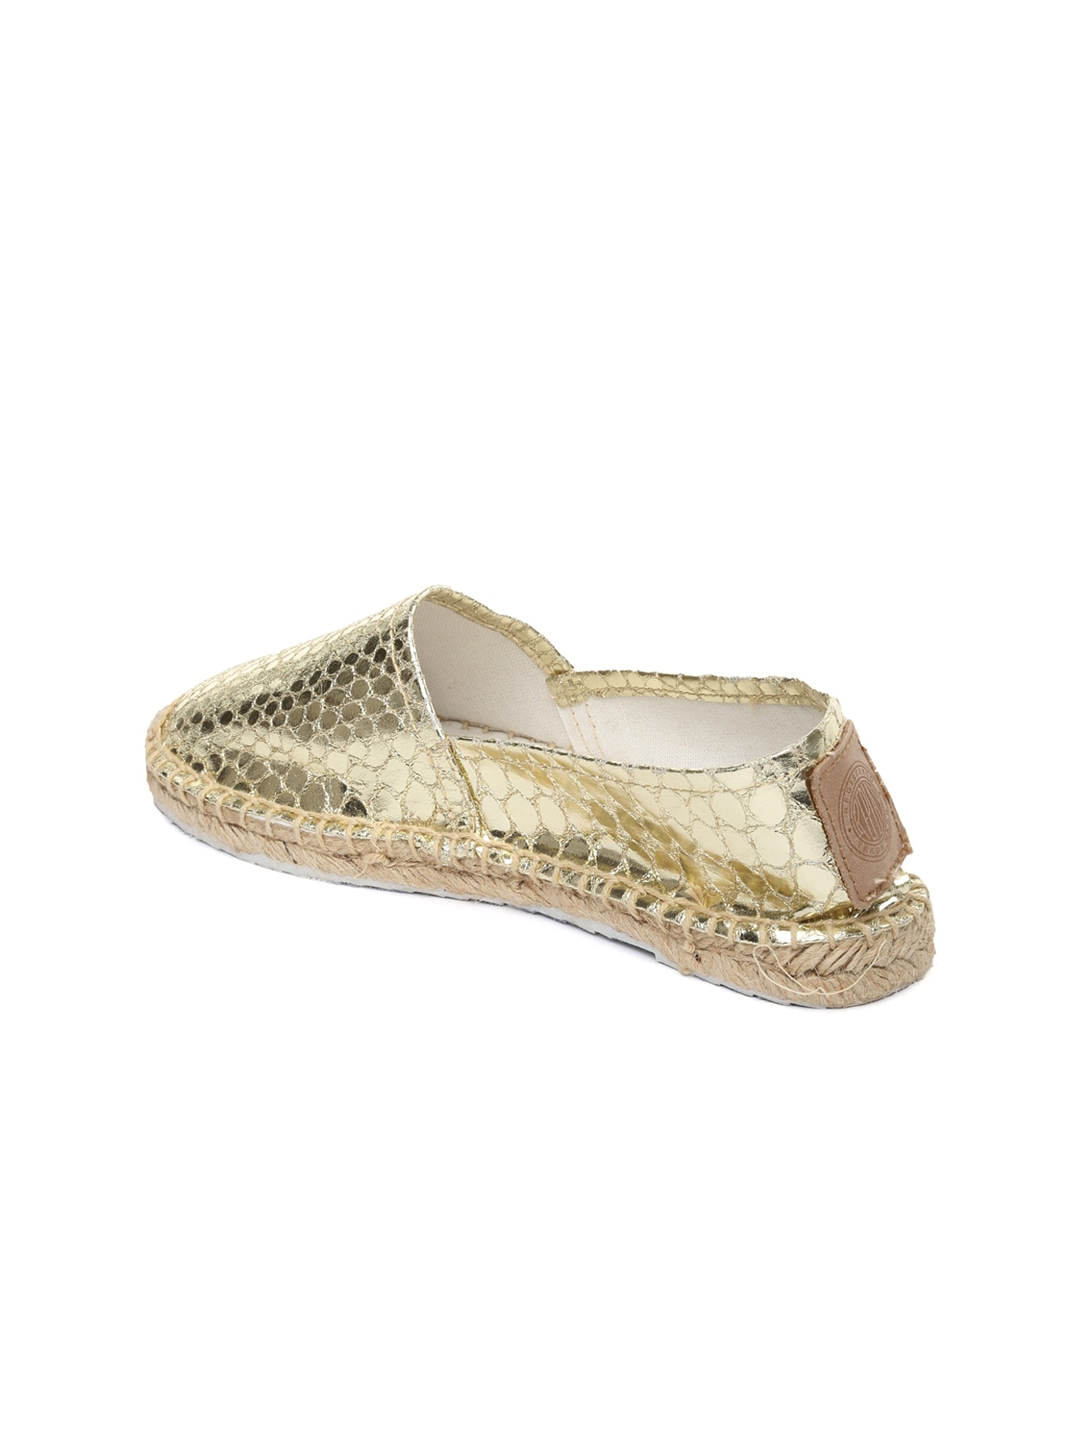 myntra replay gold toned casual shoes 694325 buy